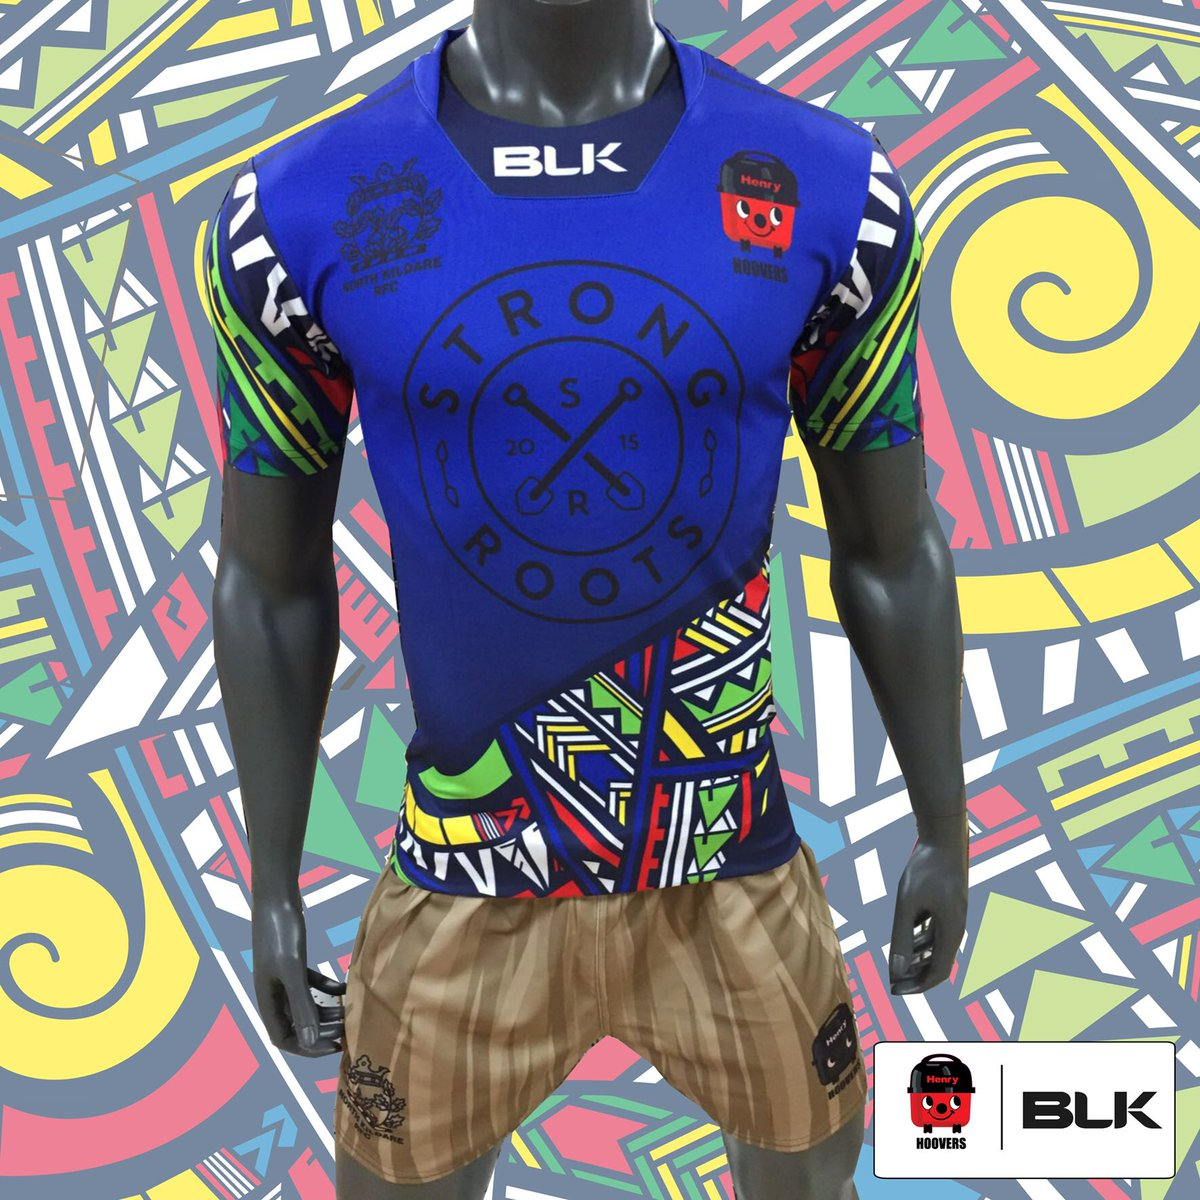 ed54adc26bc Check out some of our eye catching kits and design your own at  http://dyo.blksport.com/ pic.twitter.com/SWiMW9Y3iS